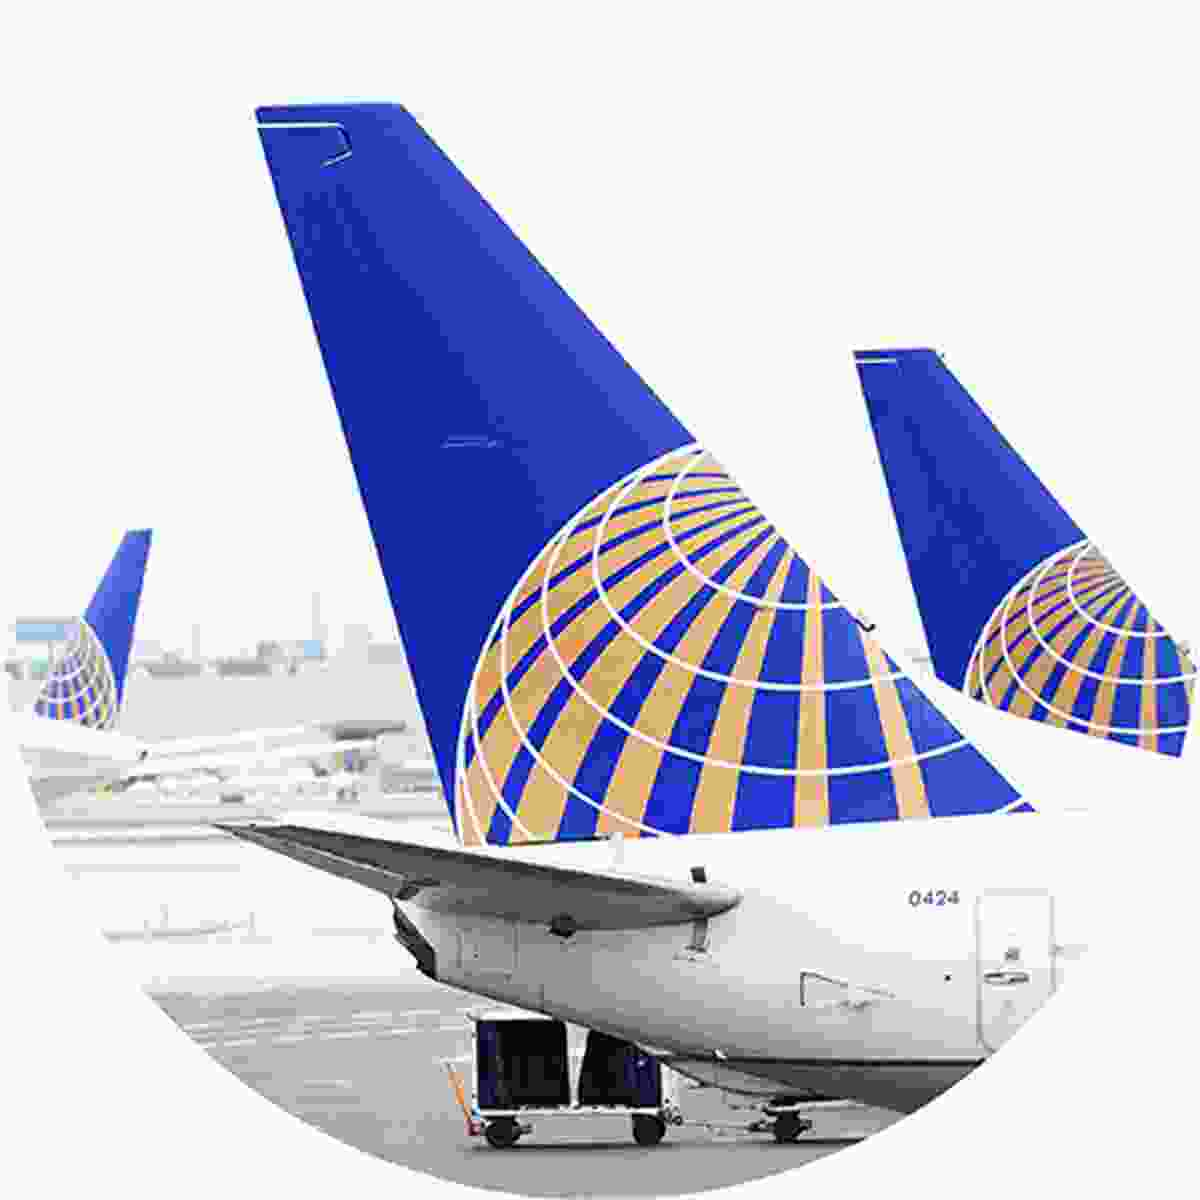 United Airlines. They fly the globe, you know (Shutterstock)